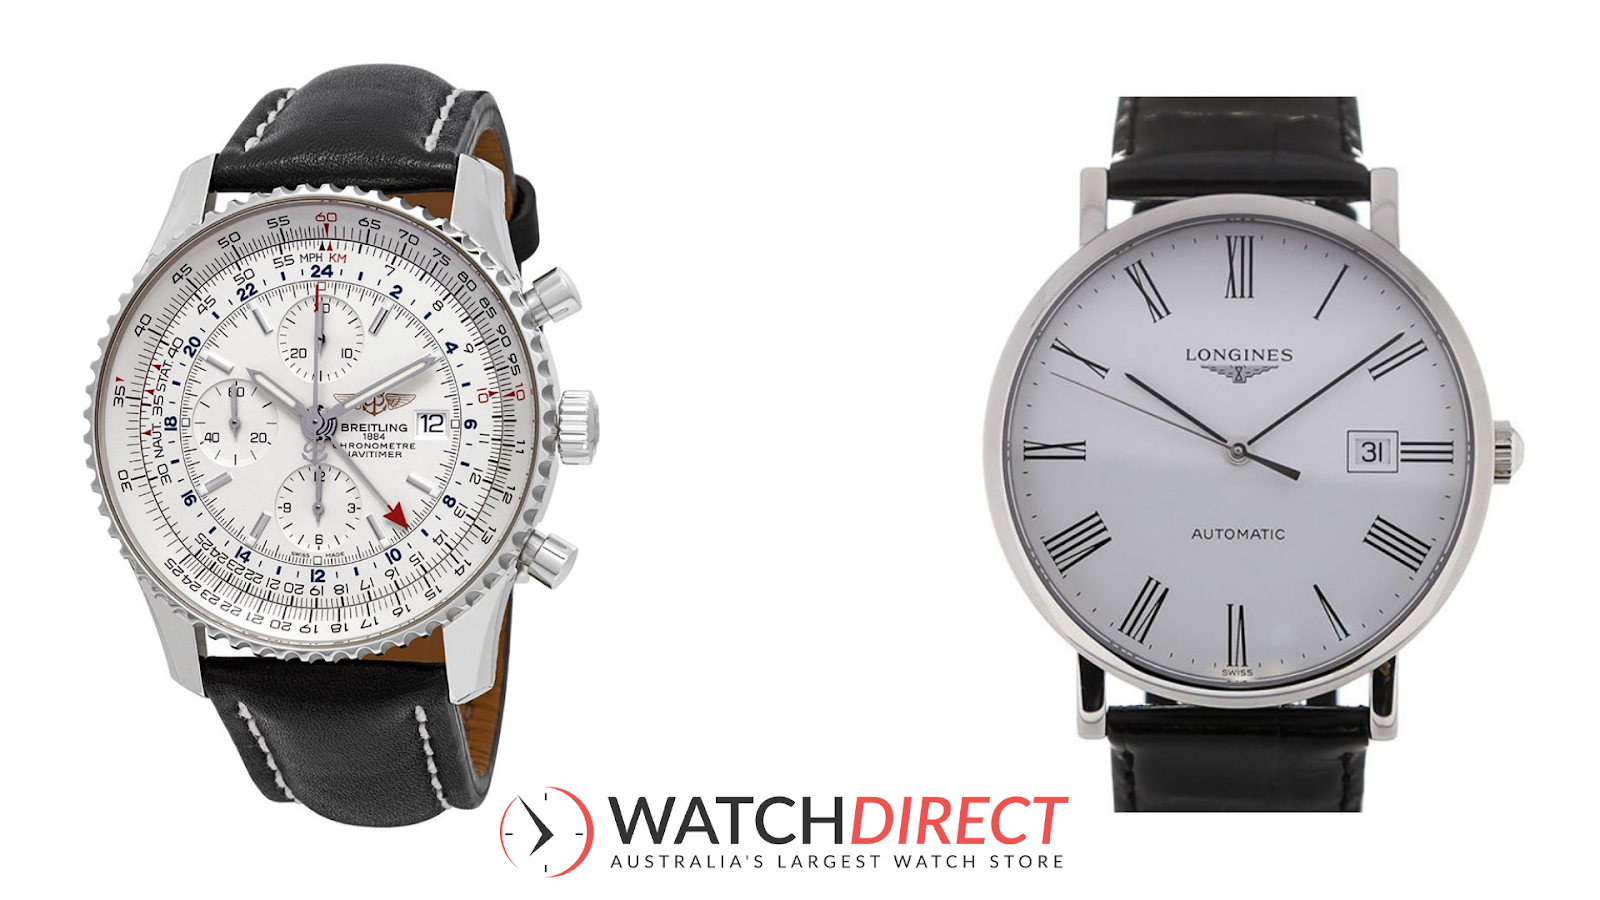 Slim and thick contrasting with the Breitling Navitimer 1 Chronograph Automatic Silver Dial Mens Watch and Longines Elegant Automatic White Dial Men's Watch.